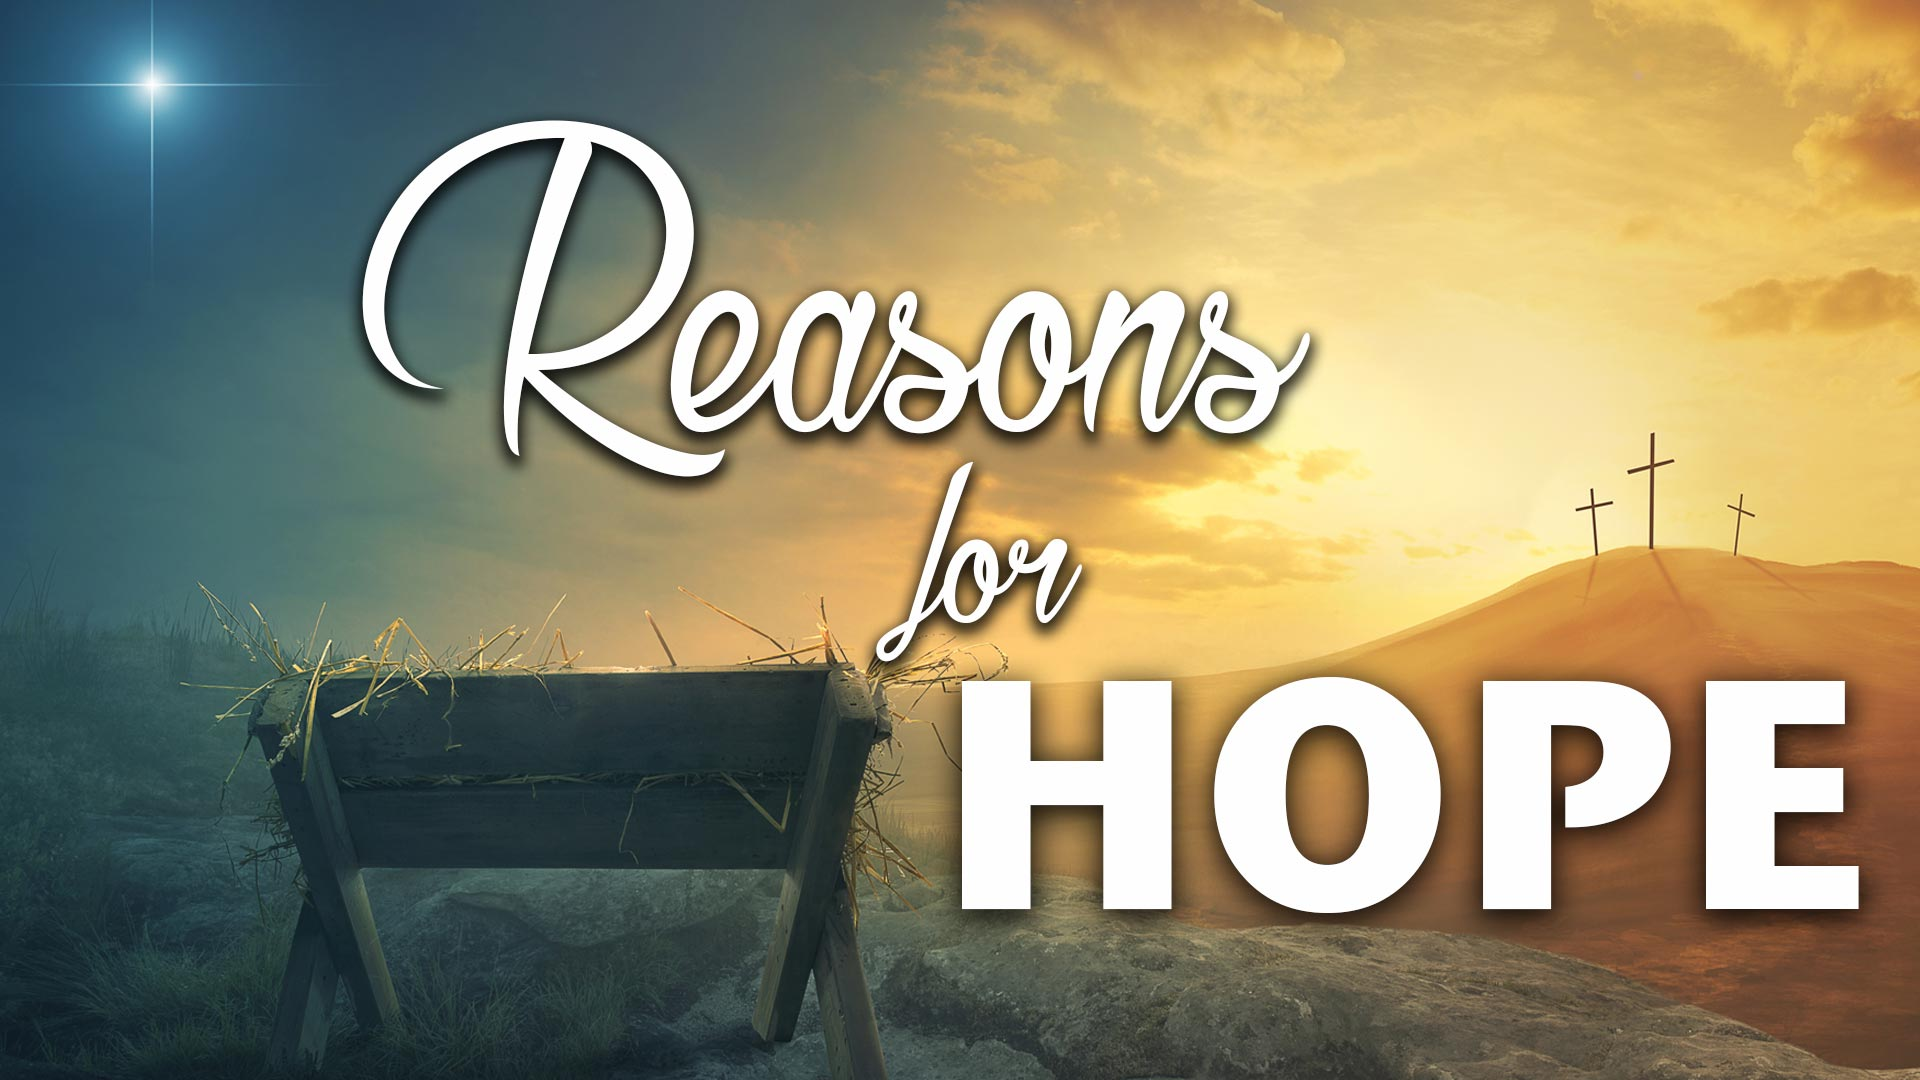 Reasons-for-hope-title.jpg